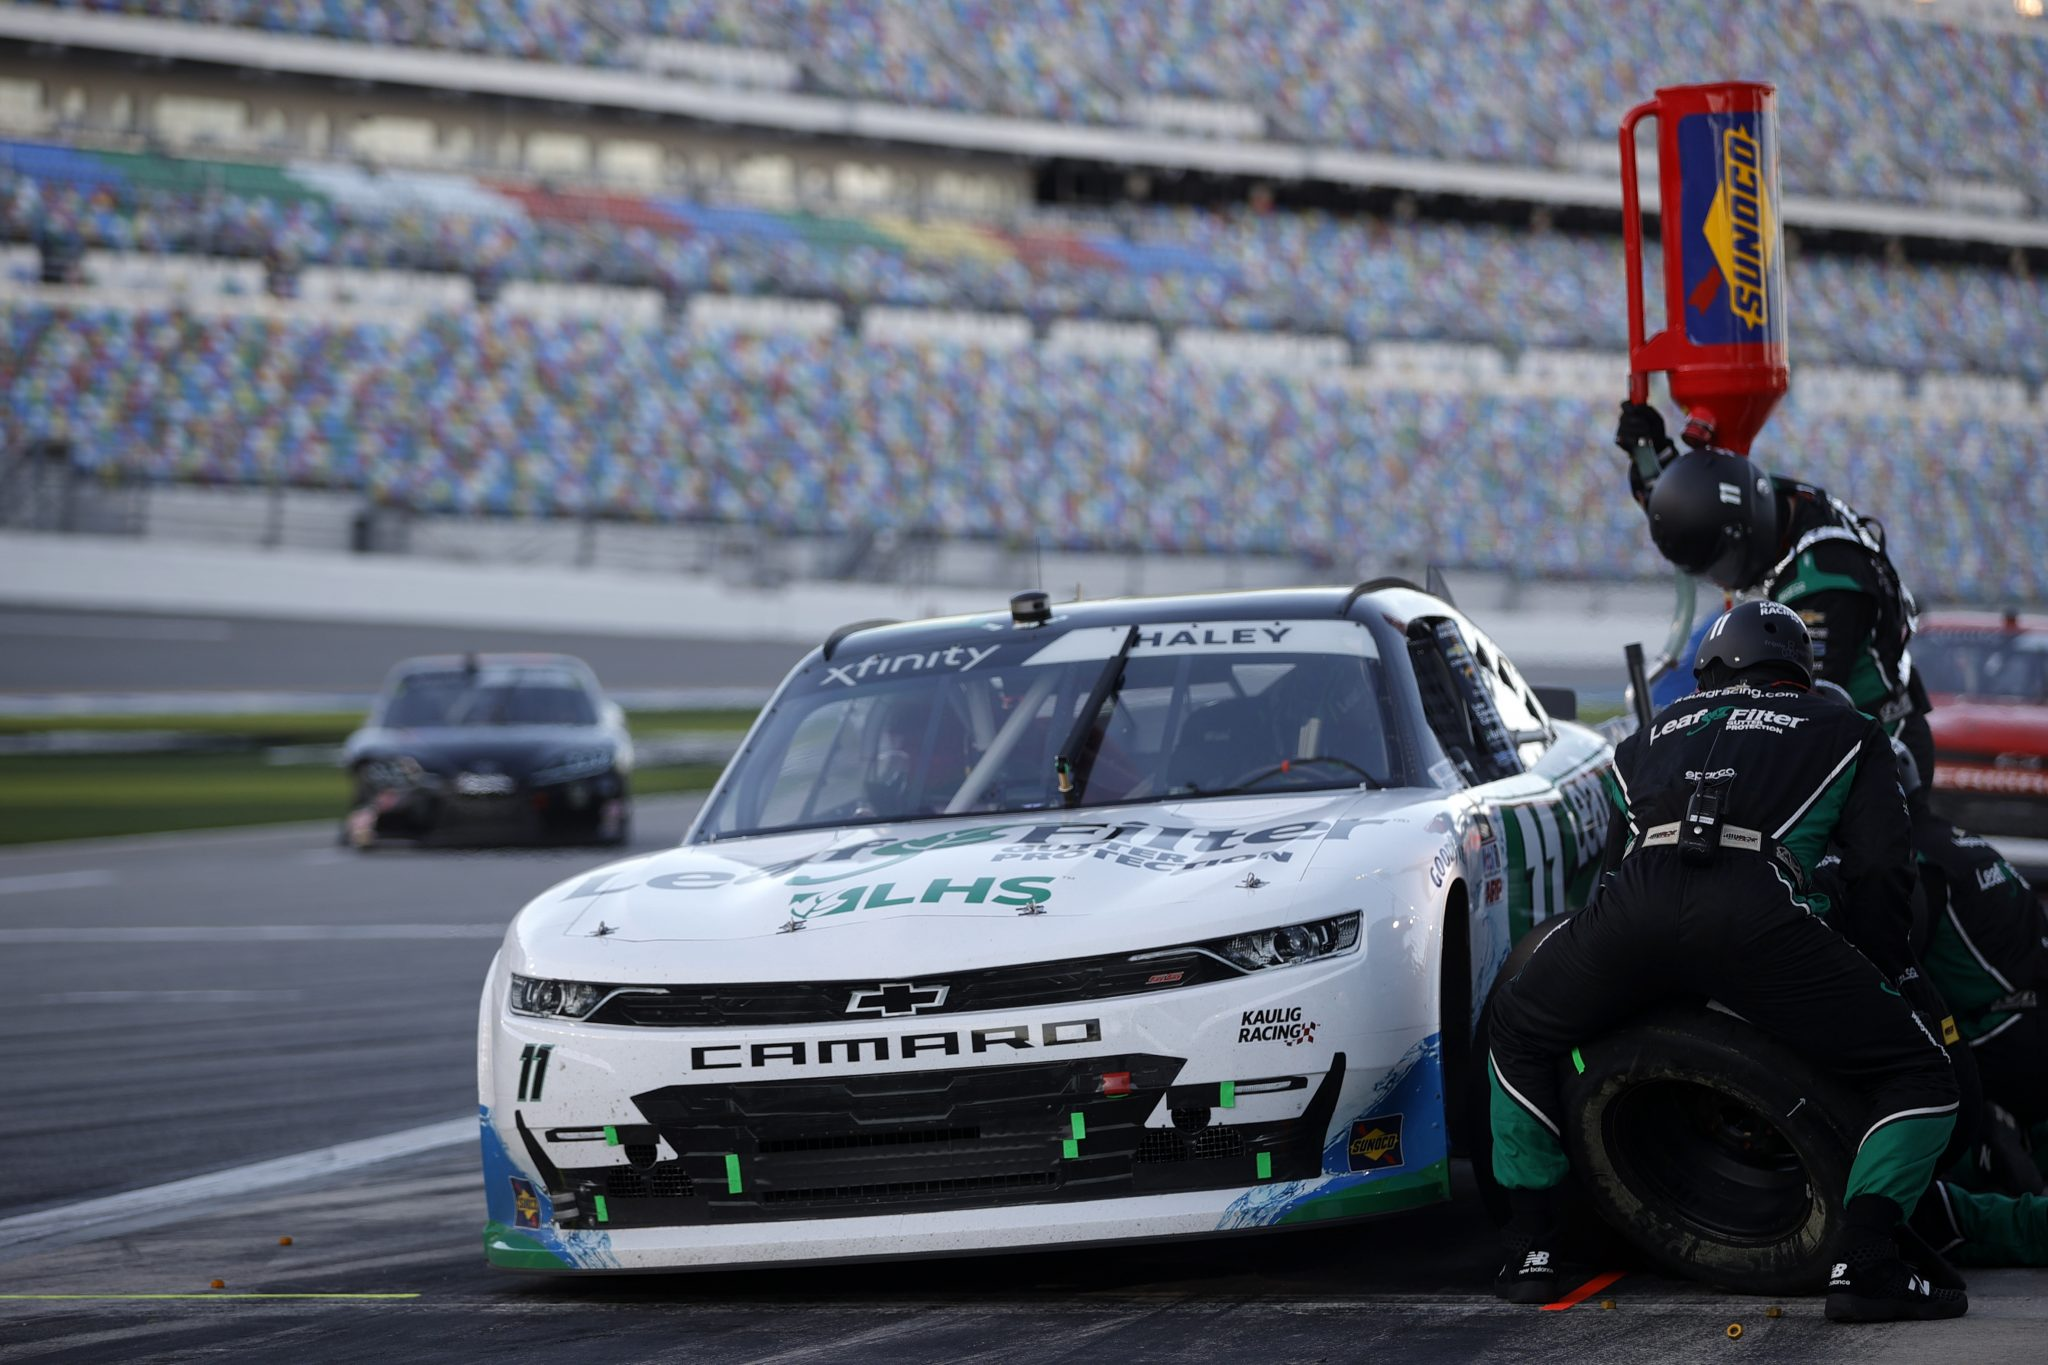 DAYTONA BEACH, FLORIDA - FEBRUARY 20: Justin Haley, driver of the #11 LeafFilter Gutter Protection Chevrolet, pits during the NASCAR Xfinity Super Start Batteries 188 At Daytona Presented by O'Reilly at Daytona International Speedway on February 20, 2021 in Daytona Beach, Florida. (Photo by Chris Graythen/Getty Images) | Getty Images